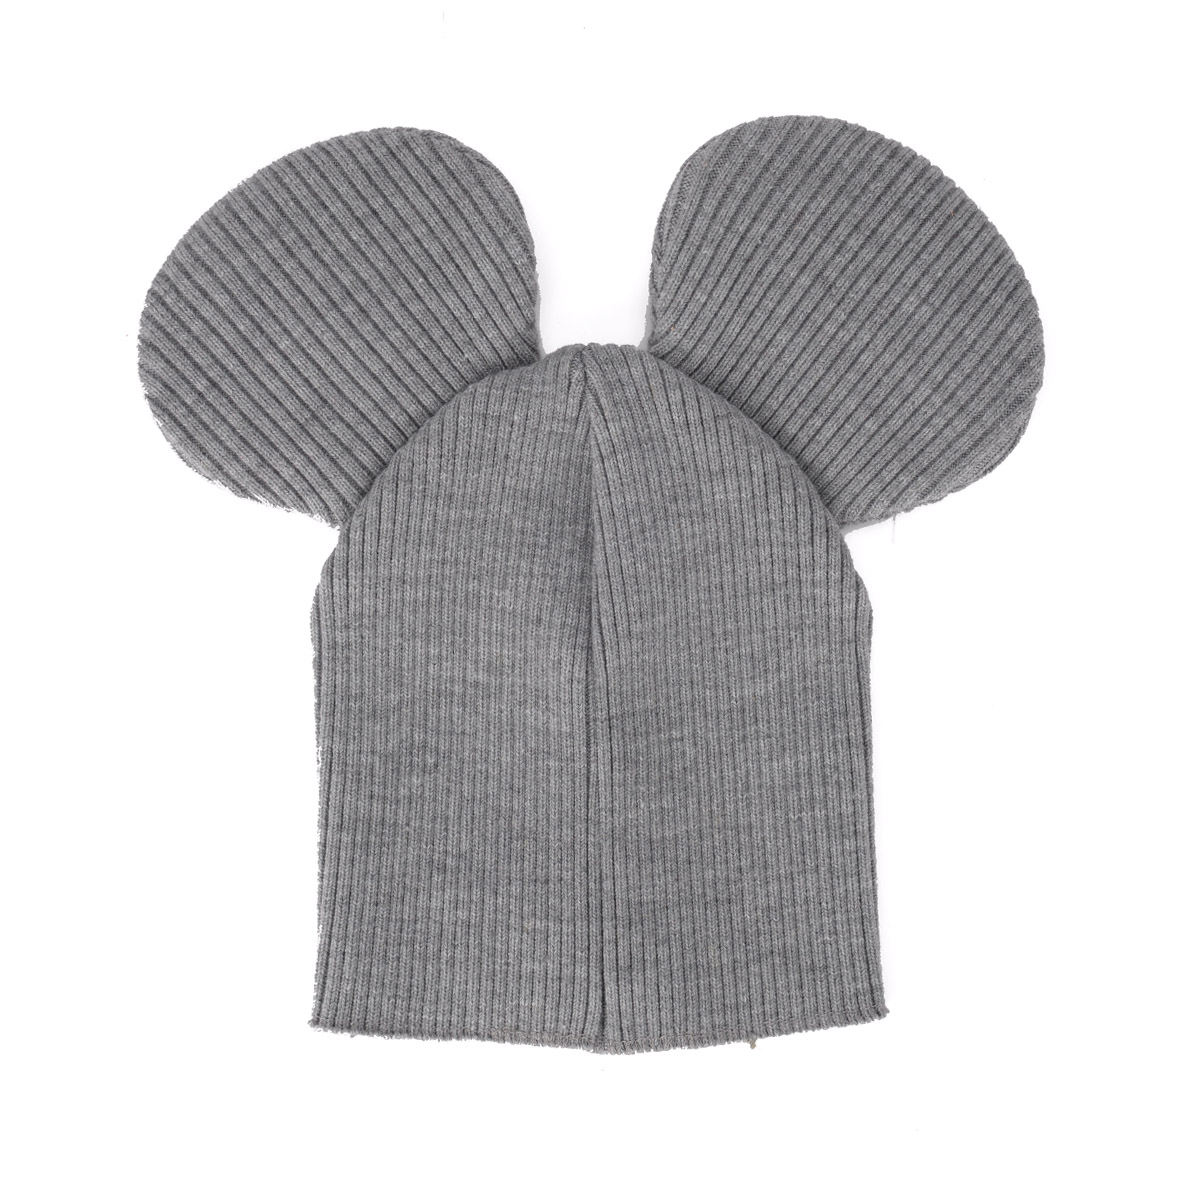 Comme des Garçons Shirt mixed grey wool fabric hat with ears. e4a9df6ae9a1